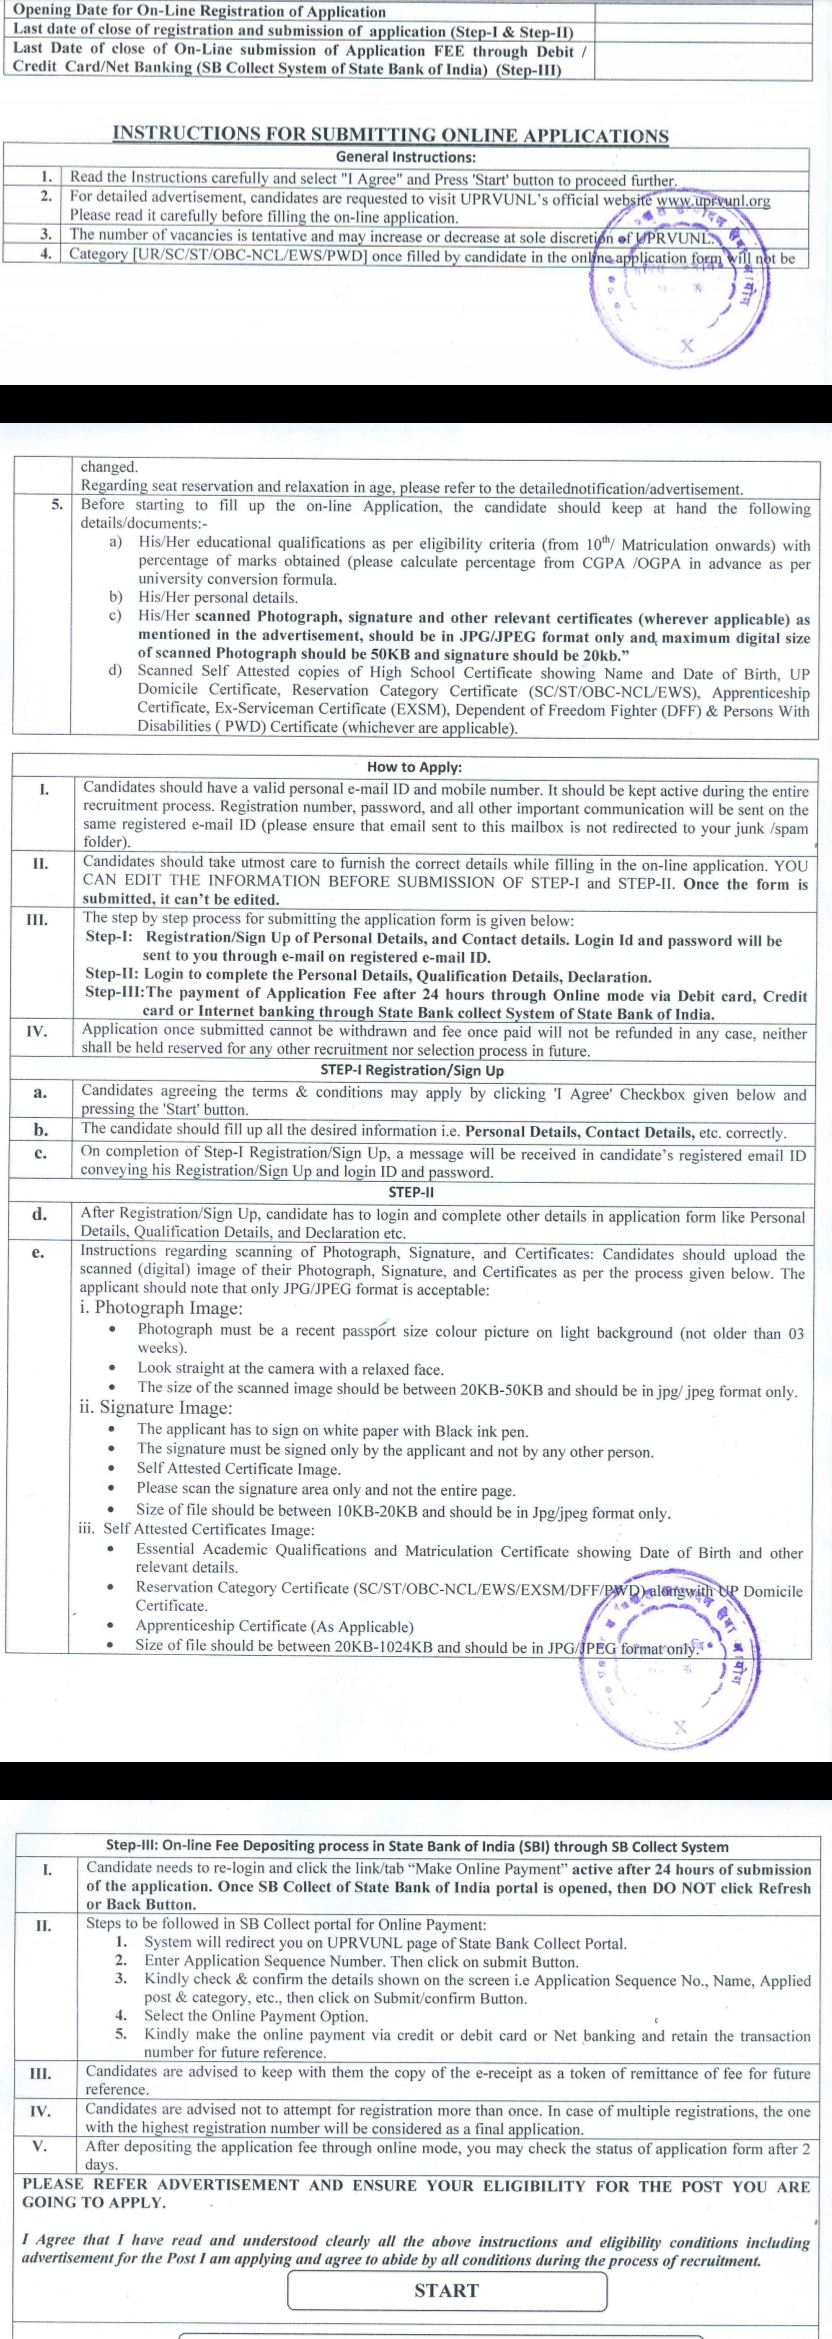 How to apply for Electricity Department Job (UPRVUNL):